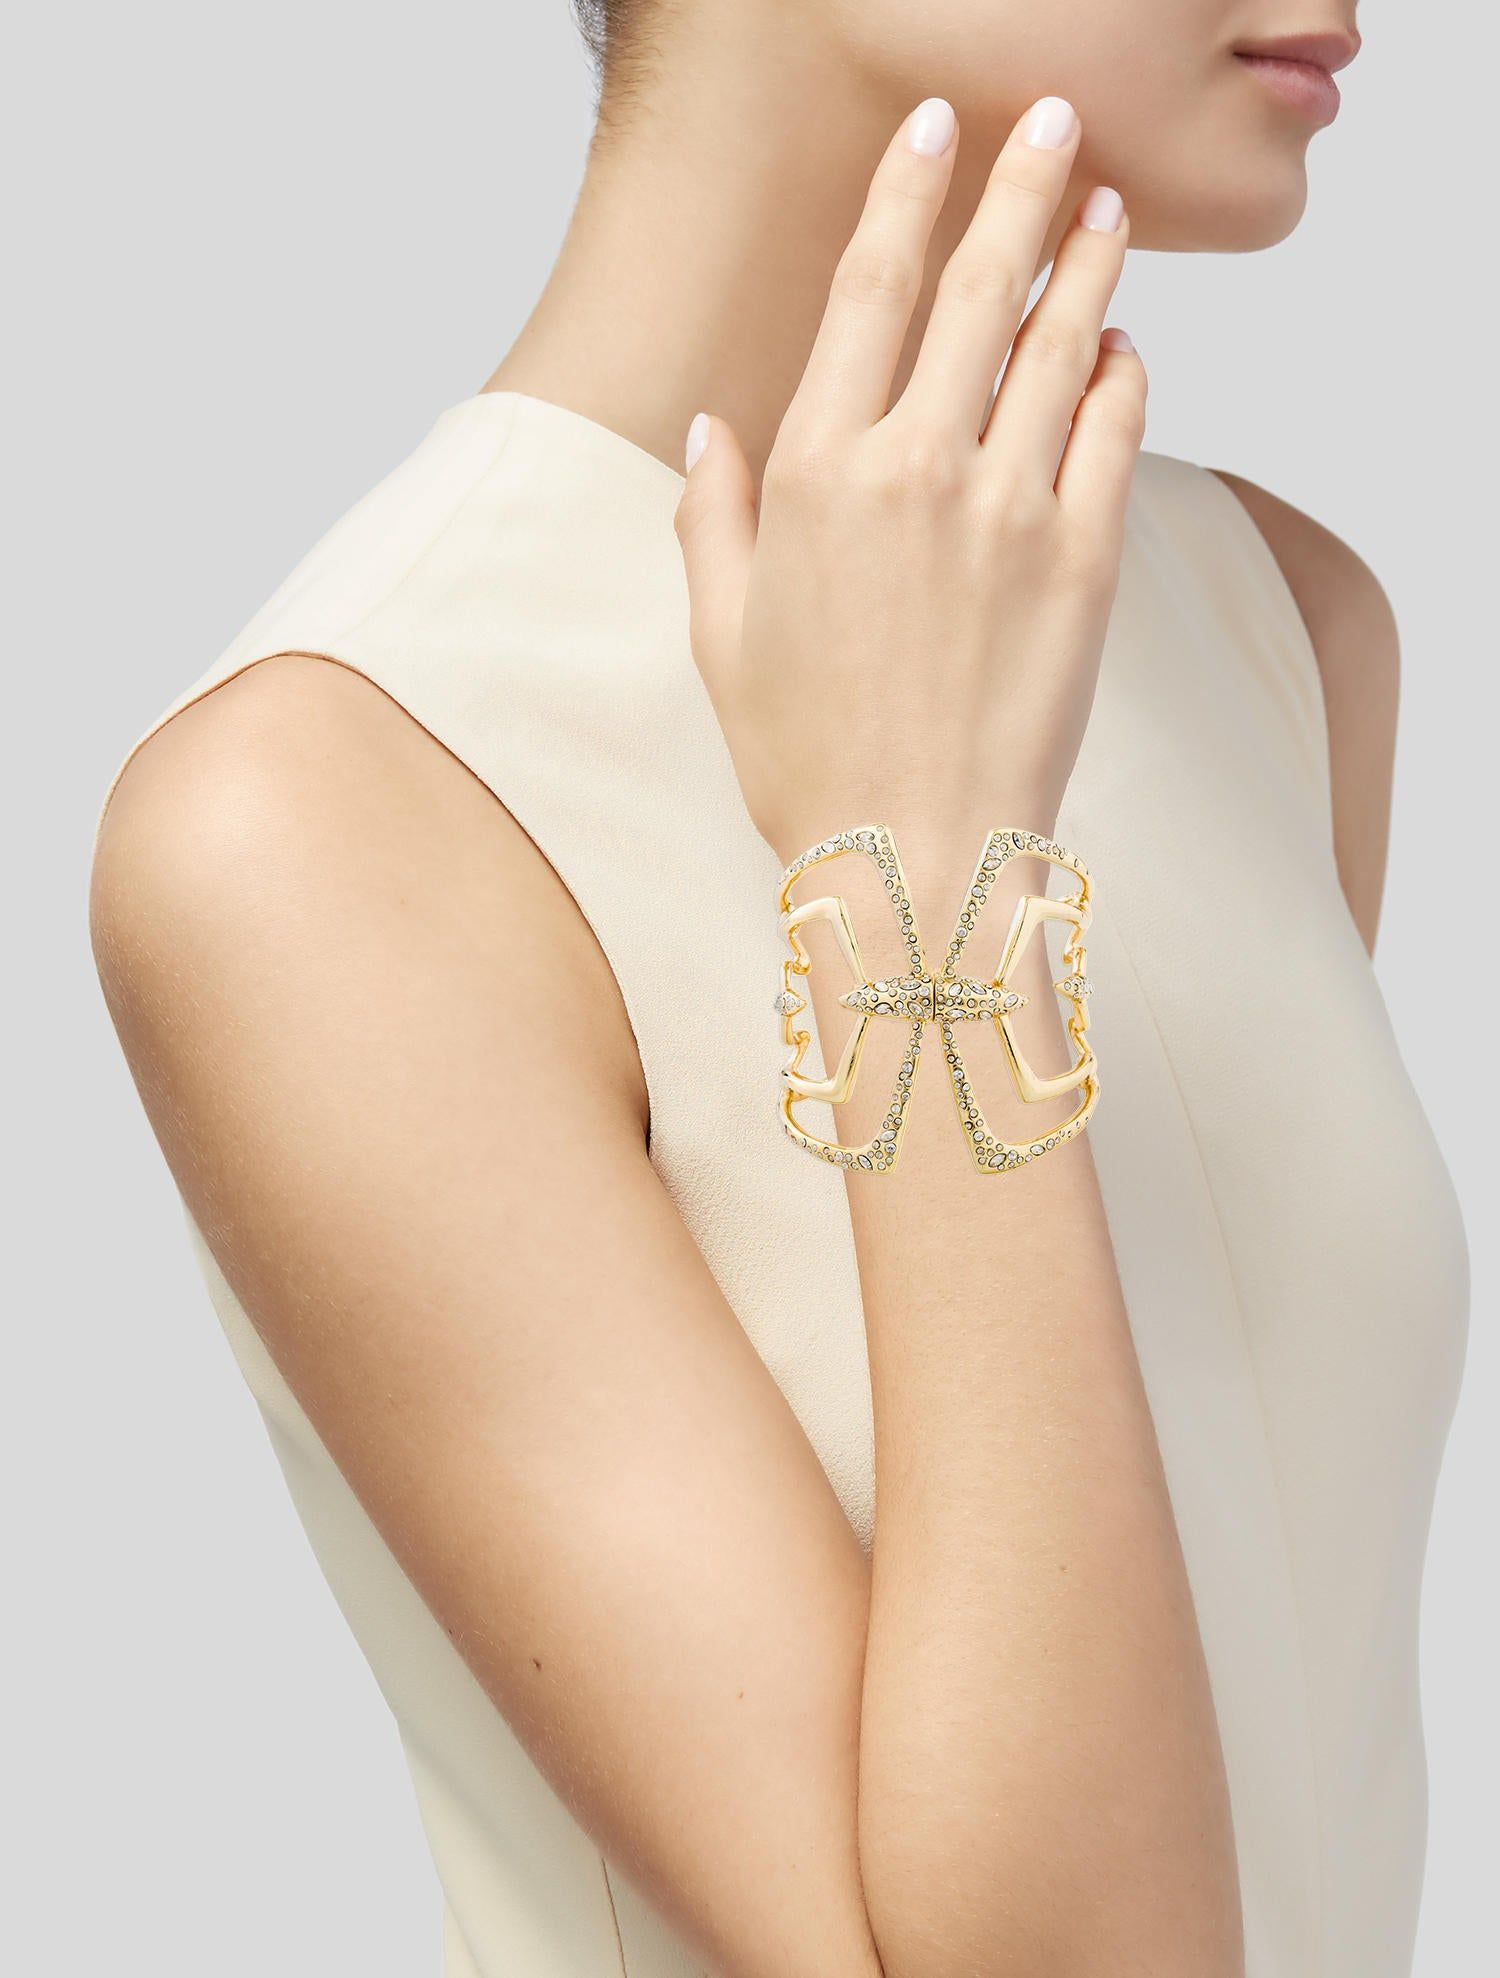 Crystal Encrusted Mirror Hinge Bracelet Active Wear For Women